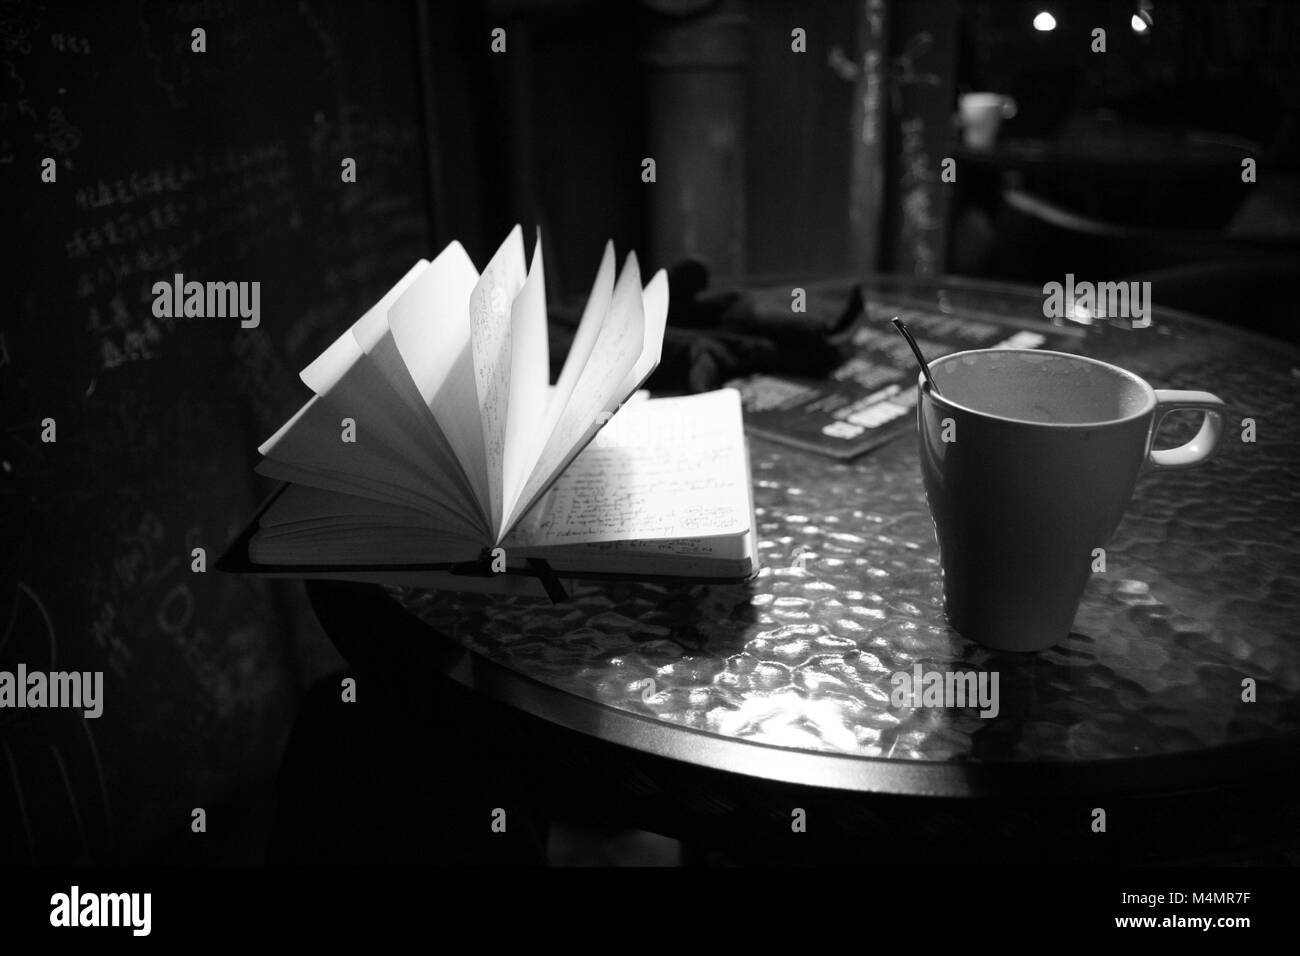 A notebook, a cup of cappuccino on a table at the Godot coffeeshop in Beijing - Stock Image